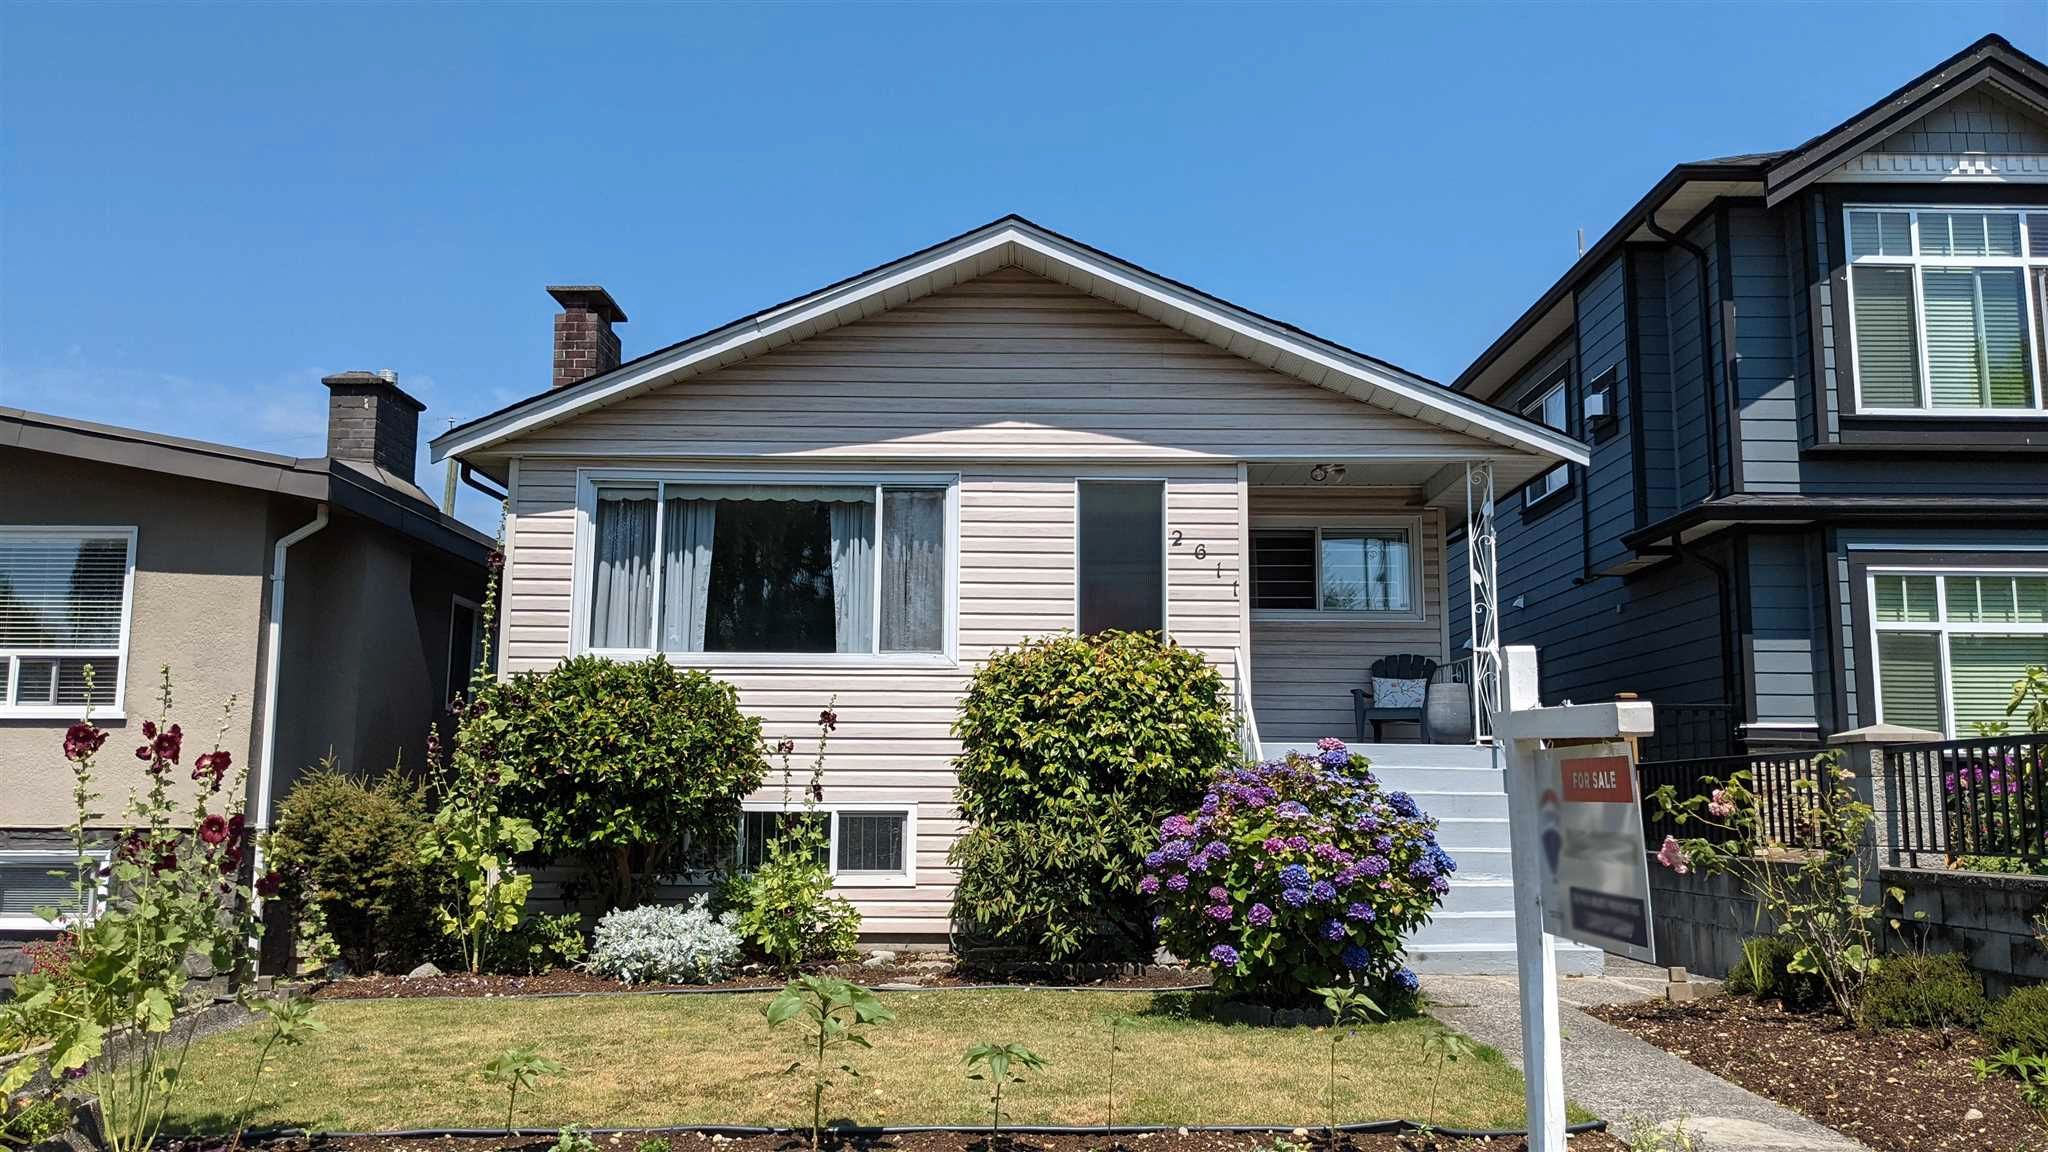 Main Photo: 2611 E 46TH Avenue in Vancouver: Killarney VE House for sale (Vancouver East)  : MLS®# R2601417